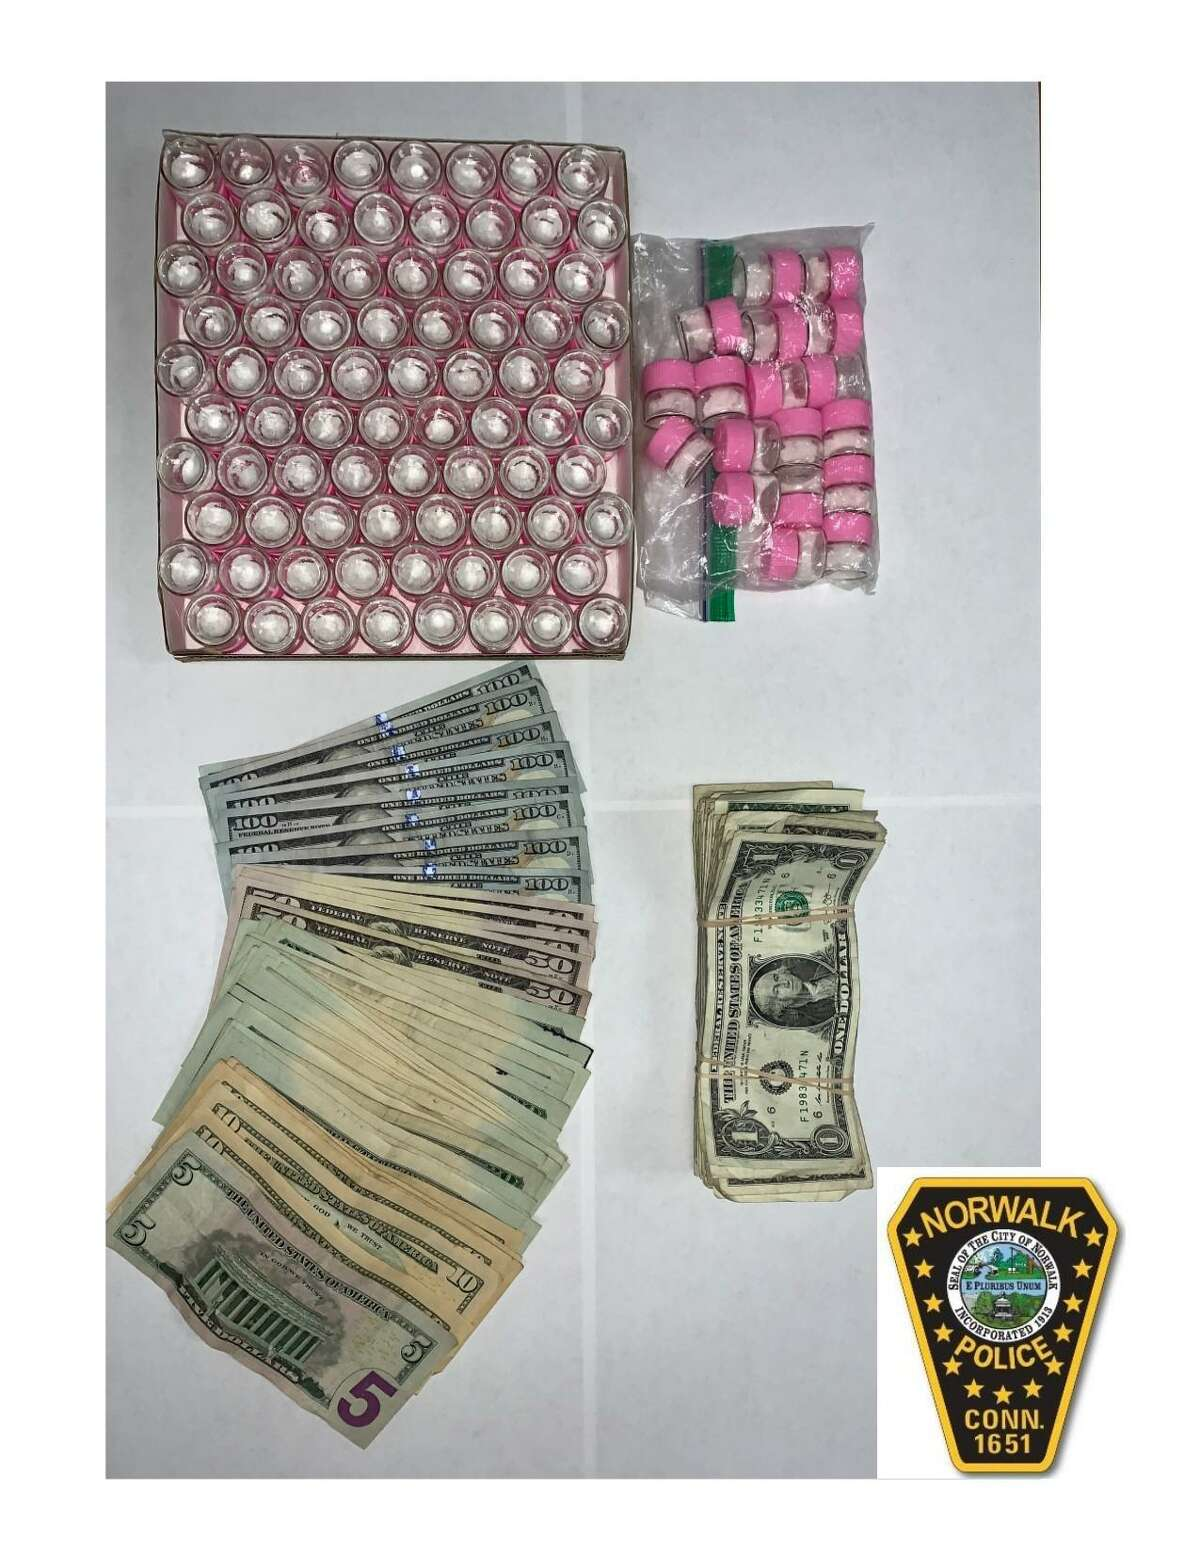 Police seized approximately $10,000 worth of powder cocaine and about $2,000 in United States currency from a South Norwalk residence on Tuesday, May 11, 2021.